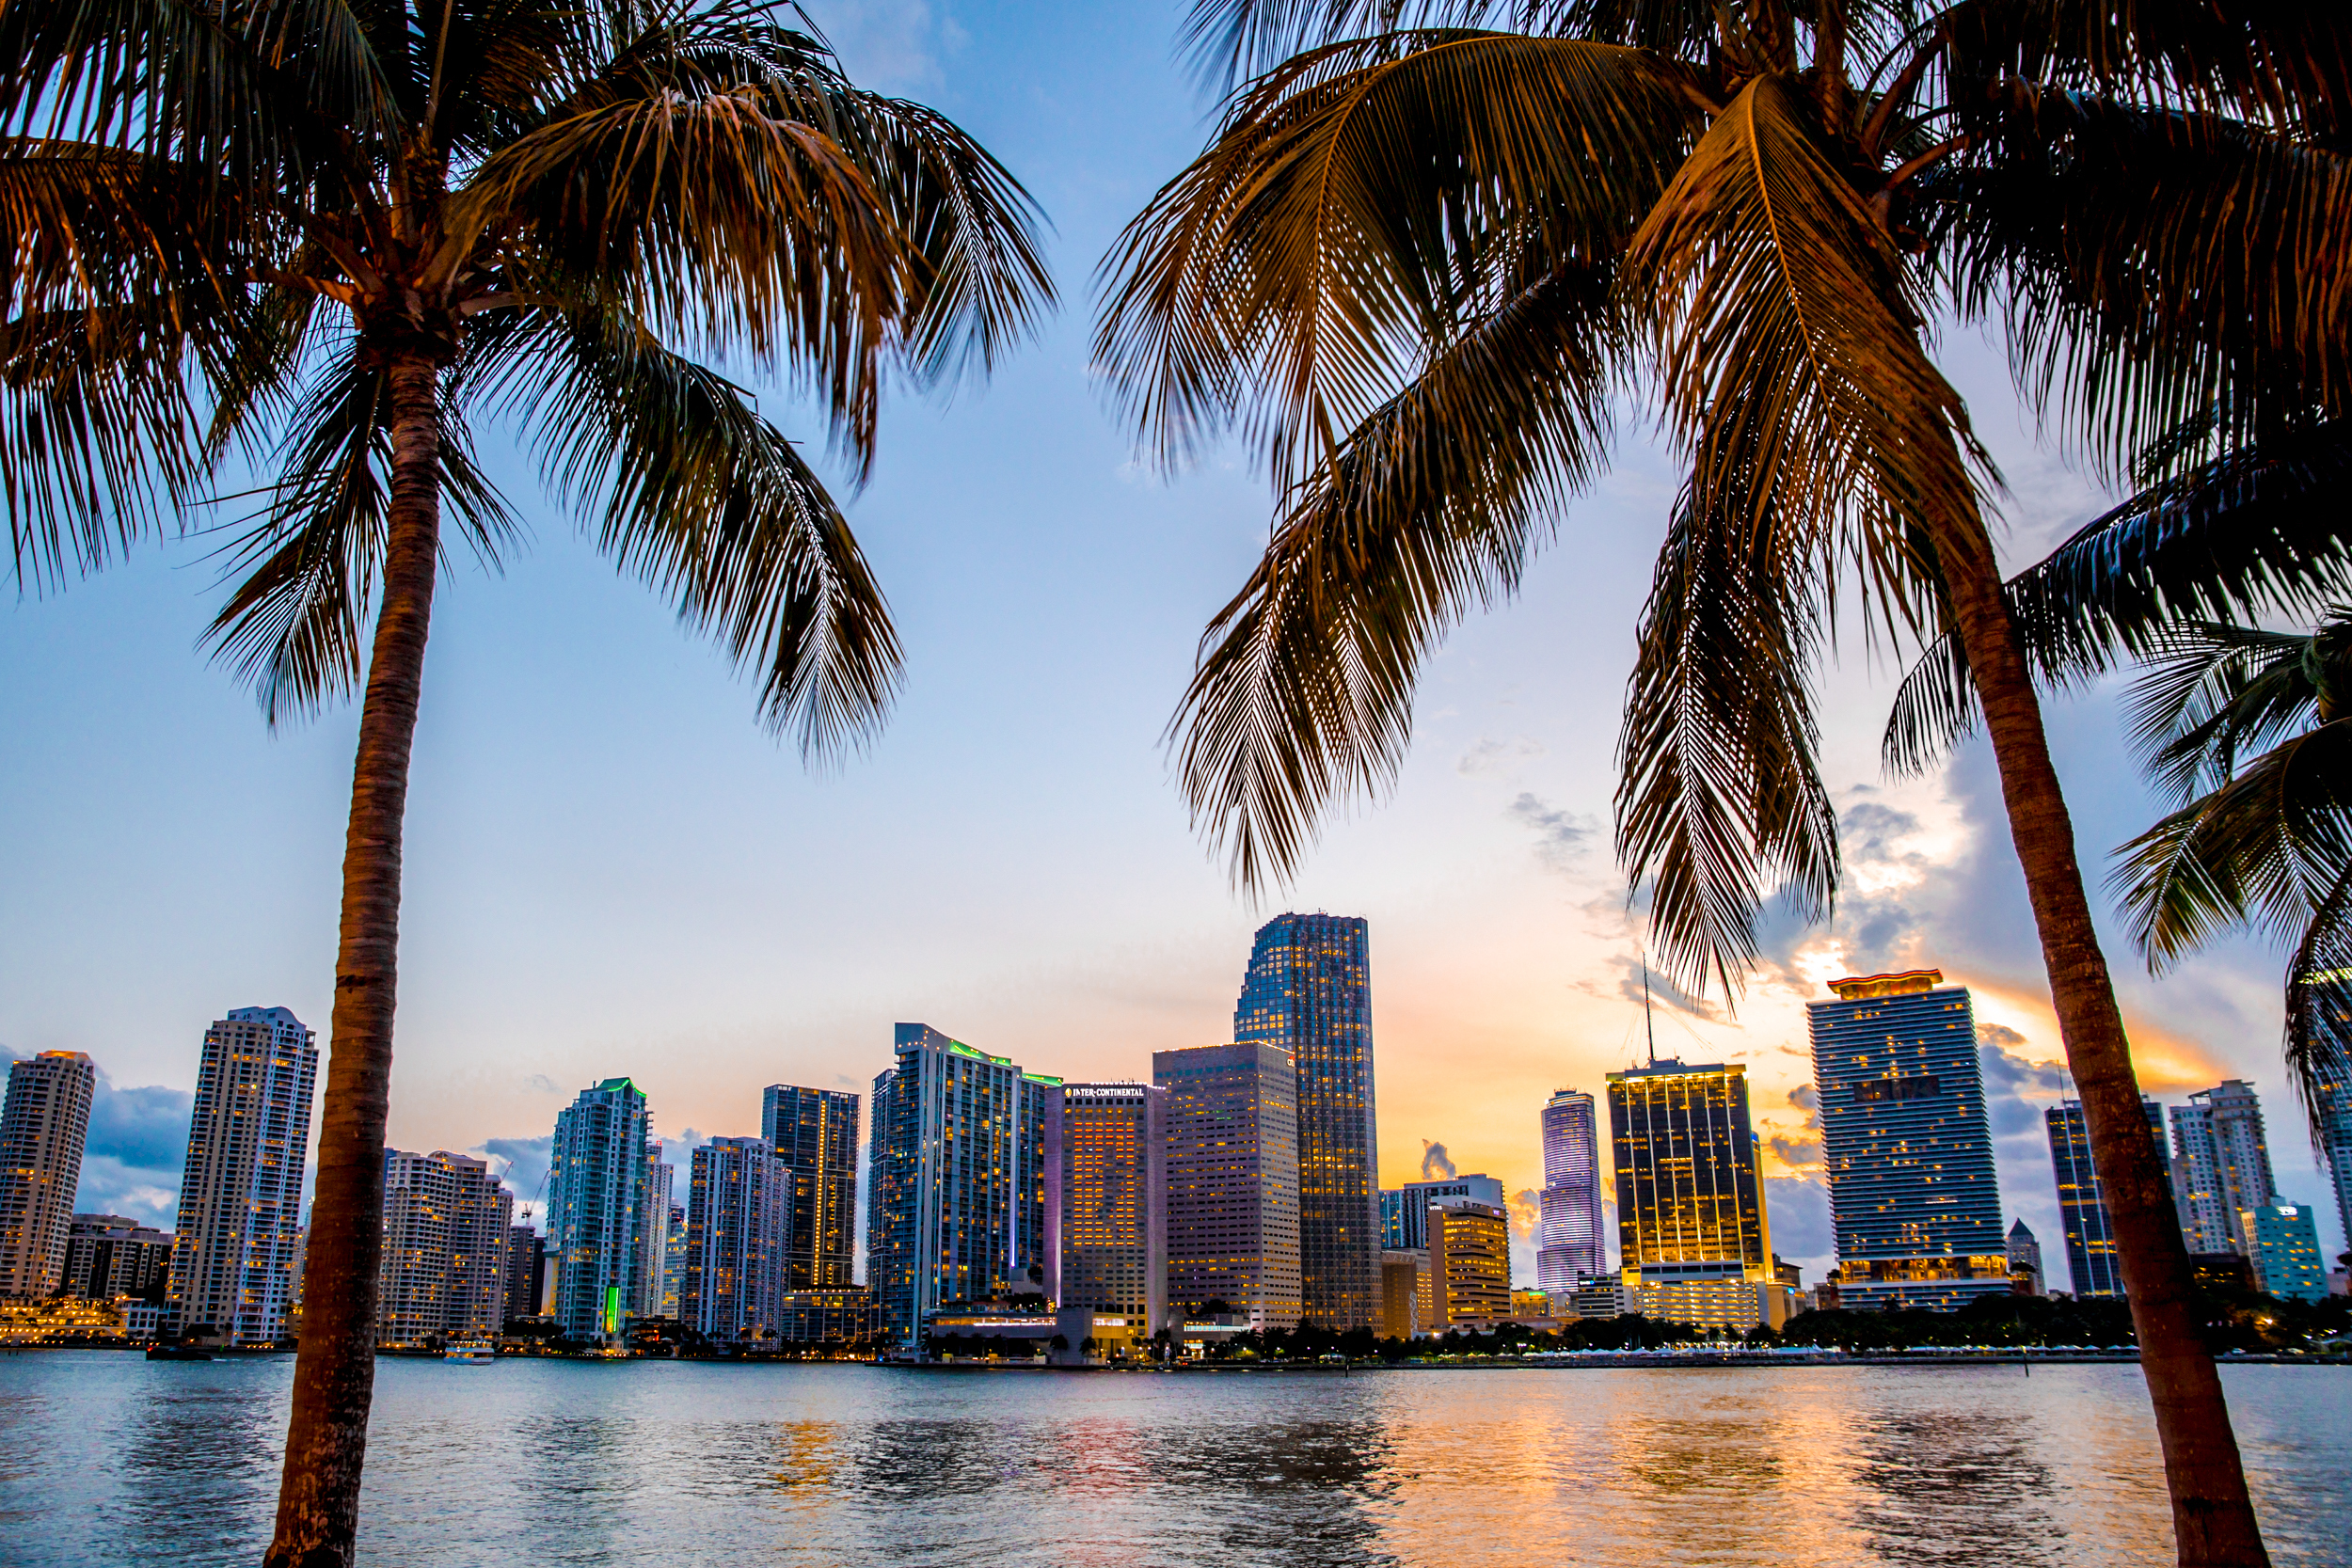 10 US & LatAm Startups Selected for Our 2018 Miami Growth Program!